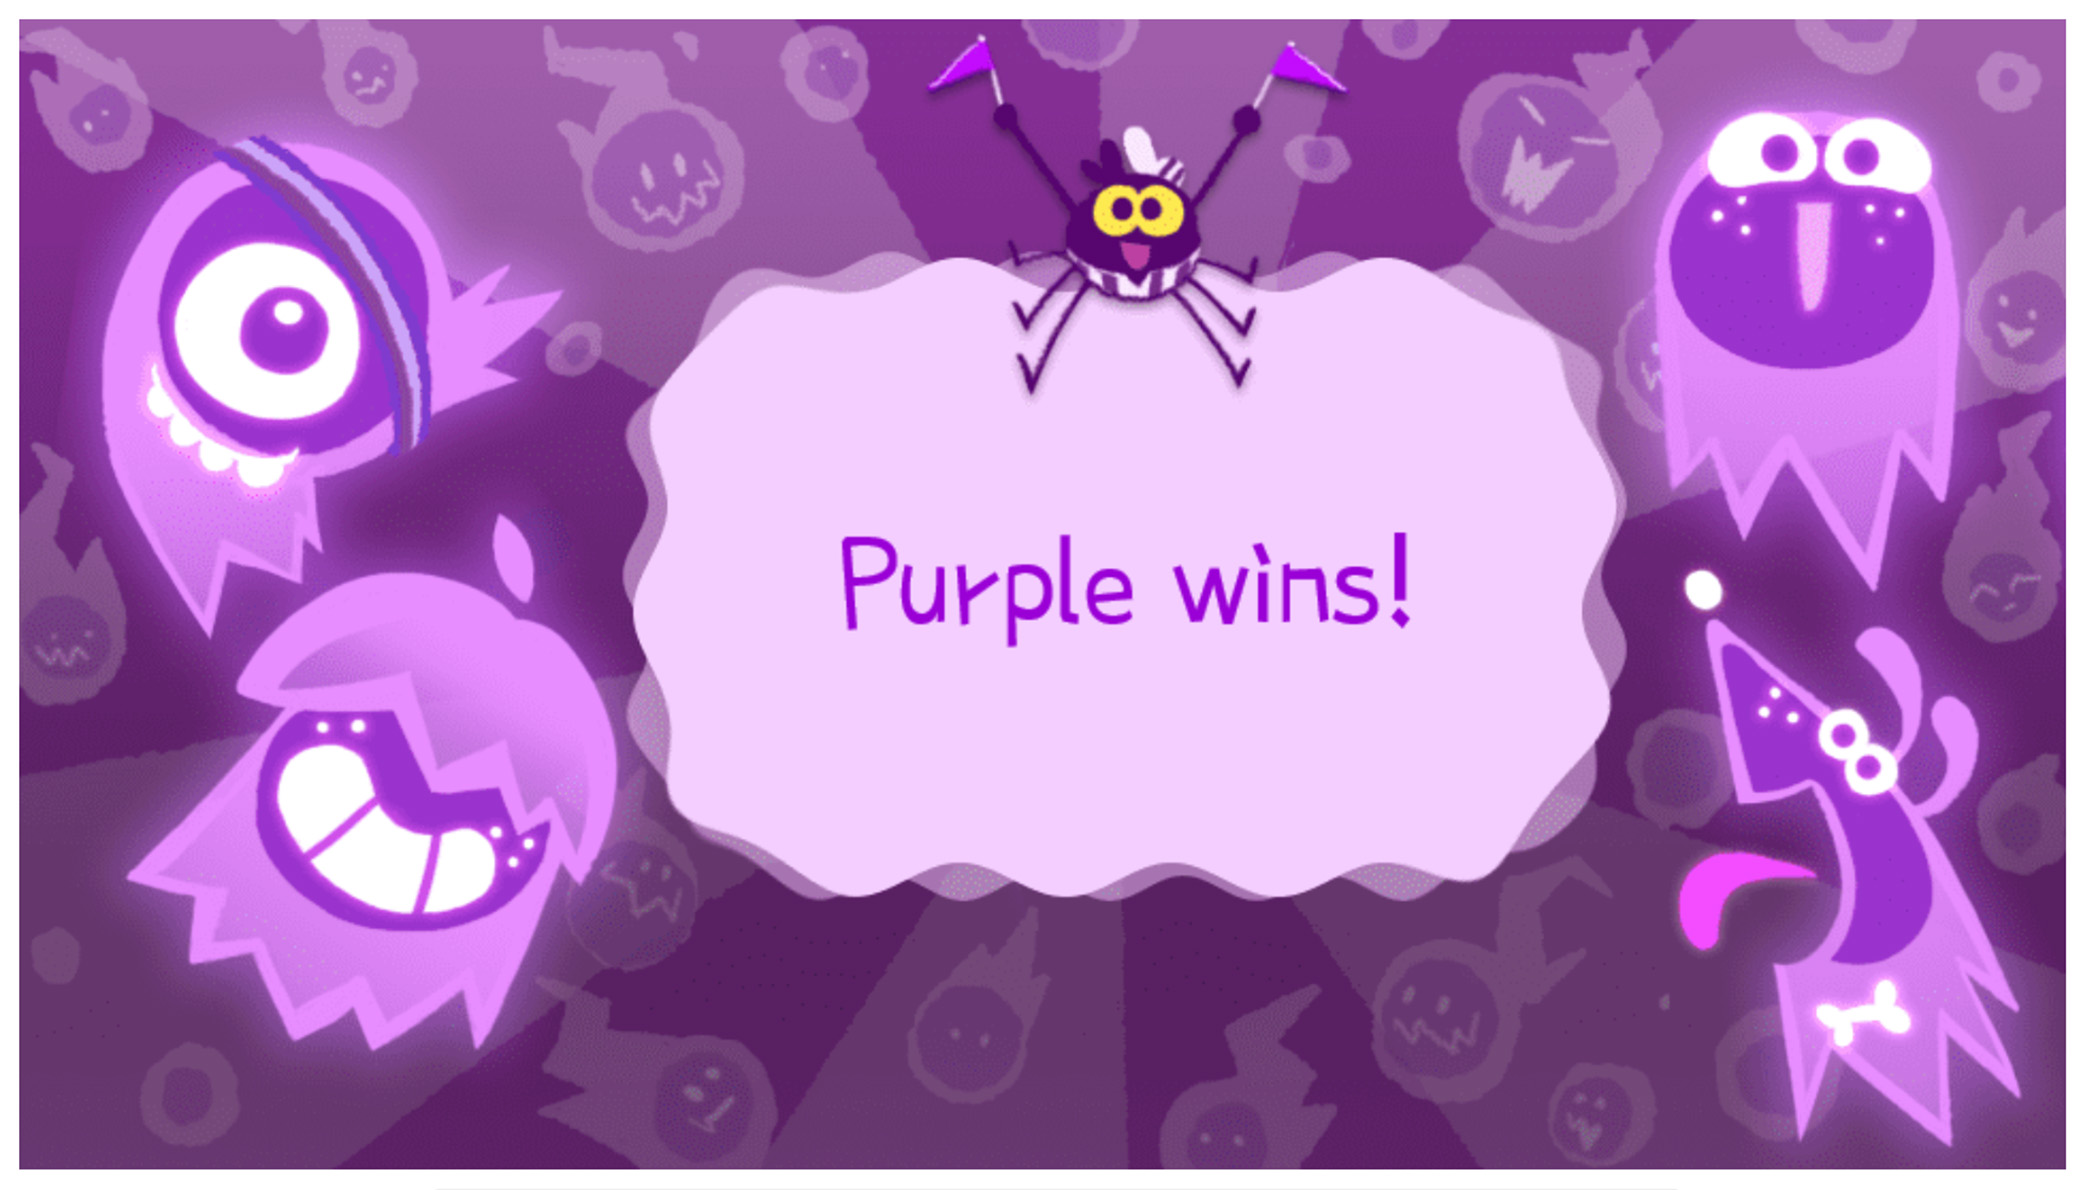 google celebrates halloween with doodle game assistant interactions google celebrates halloween with doodle